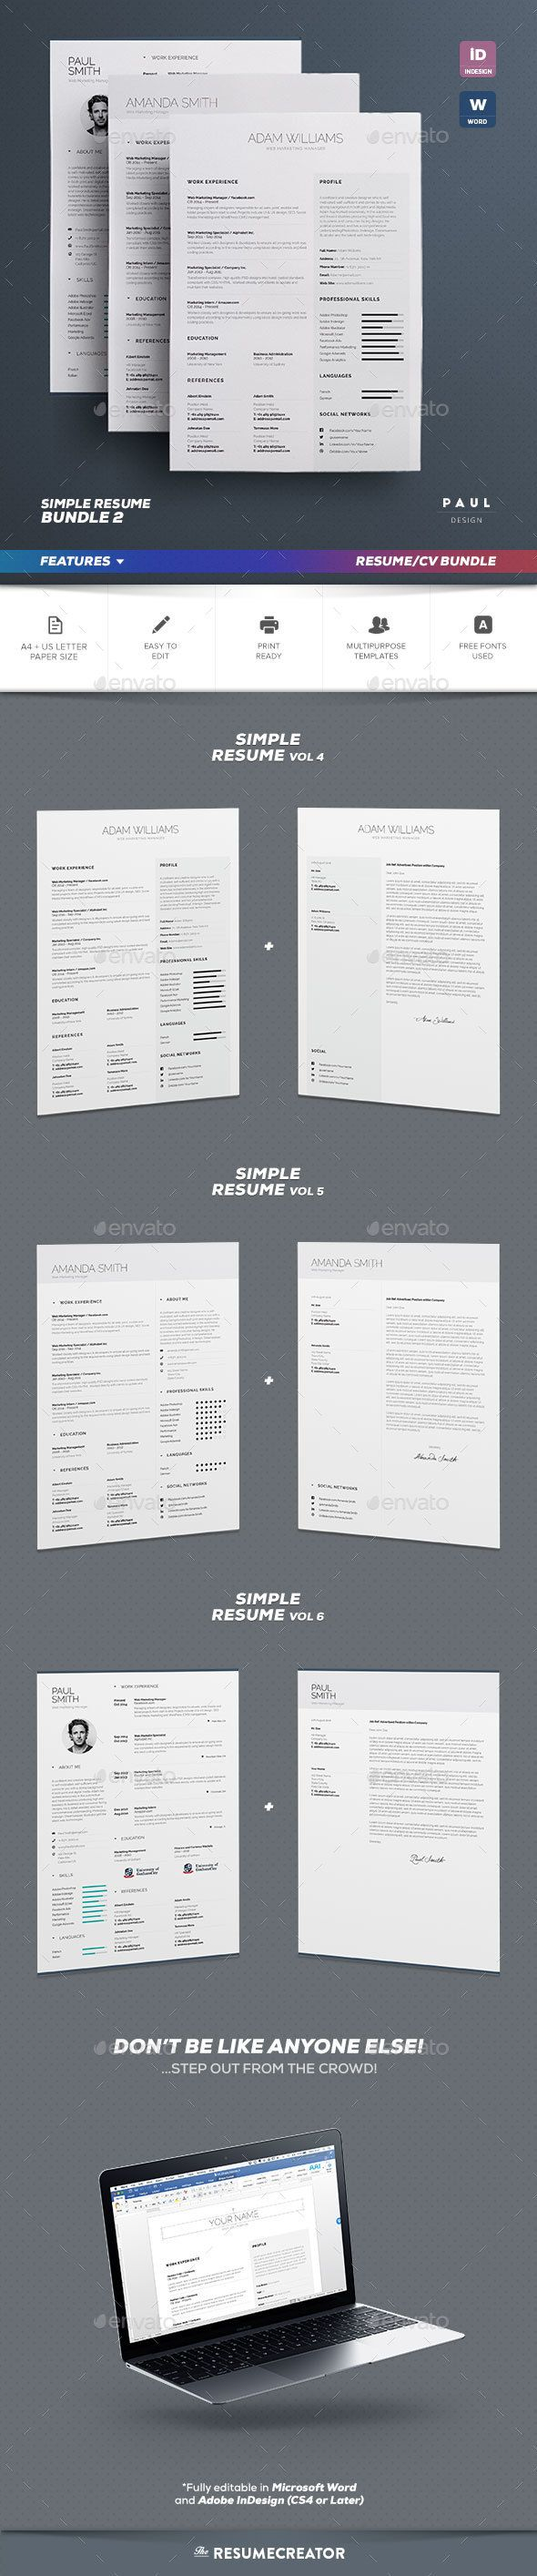 cosmetologist resume%0A Simple Resume Cv Bundle Volume